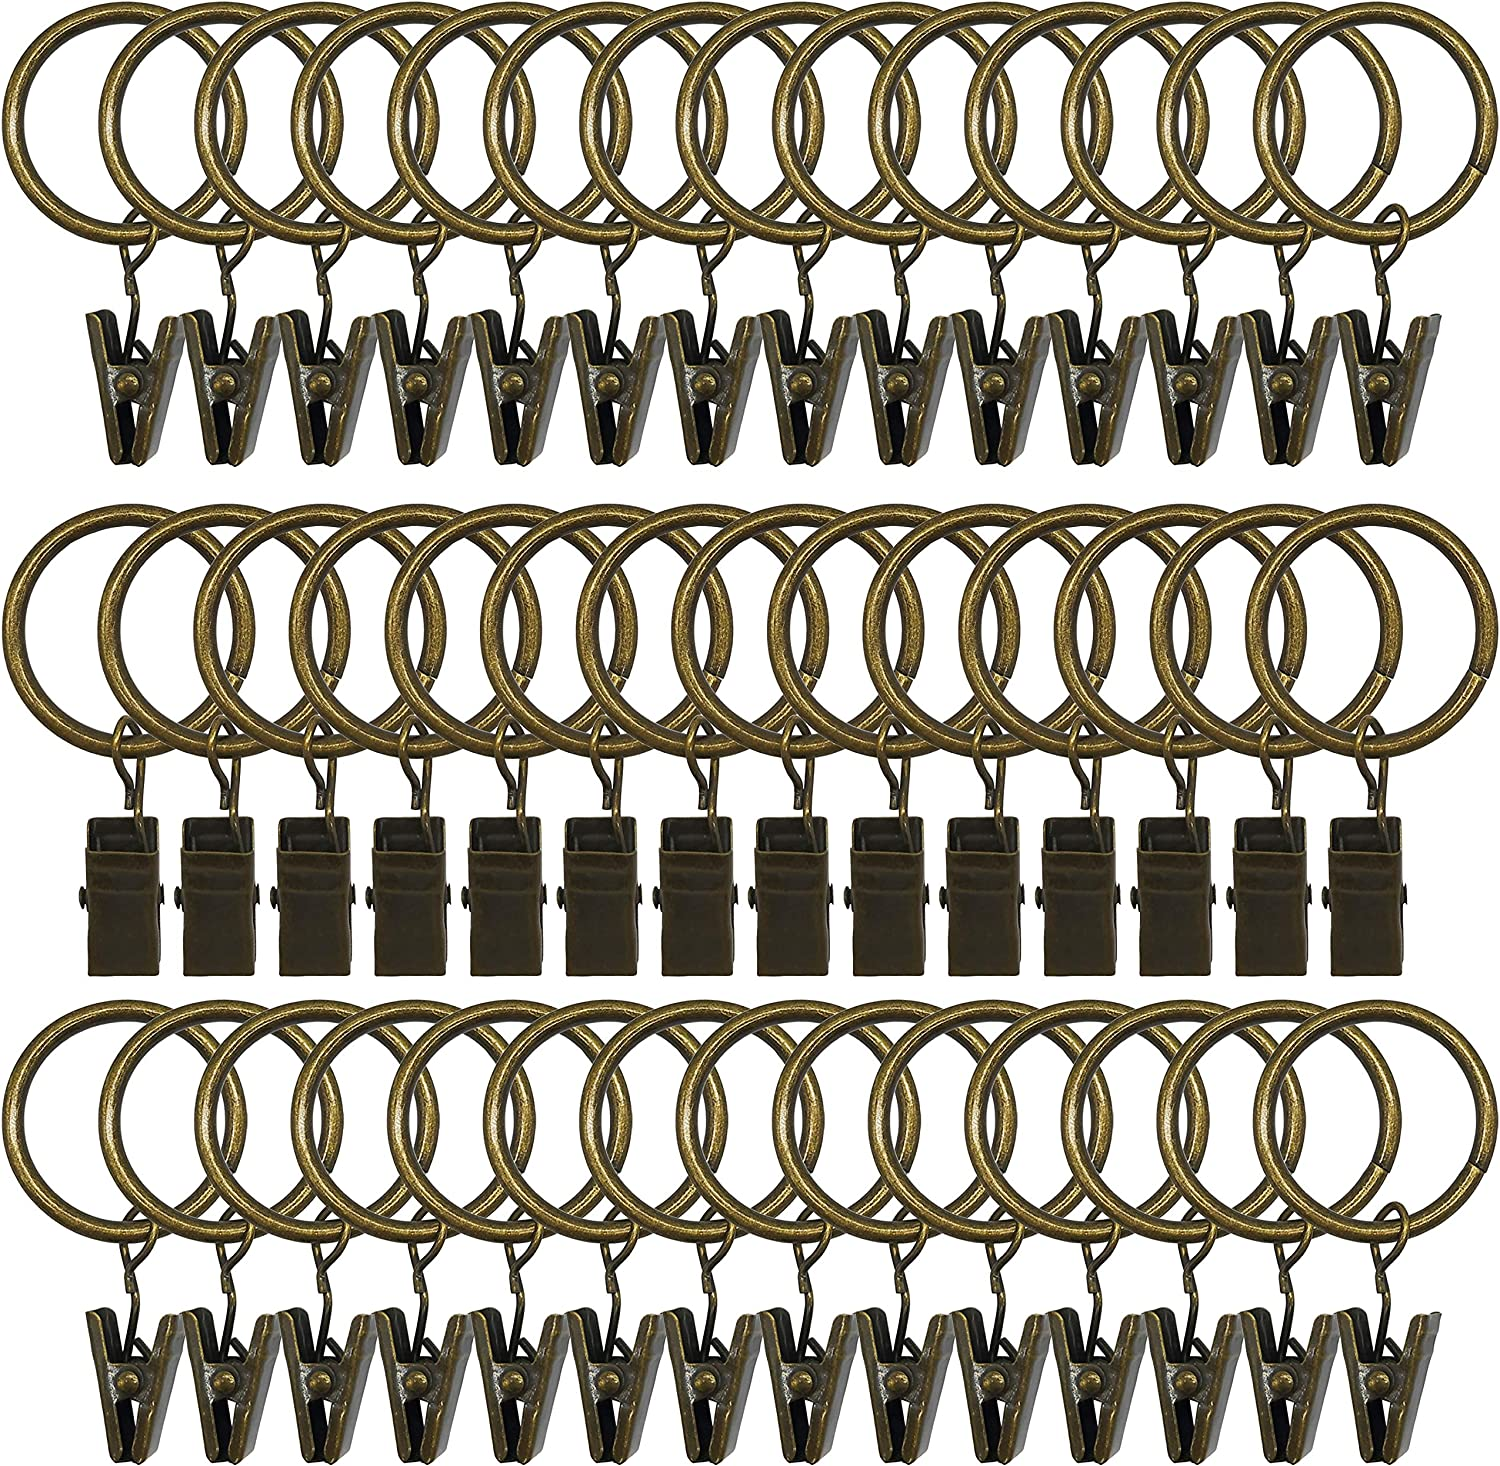 42 Pack Curtain Rings with Clips Decorative Drapery Rustproof Vintage Compatible with up to 5//8 inch Drapery Rod Silver Color